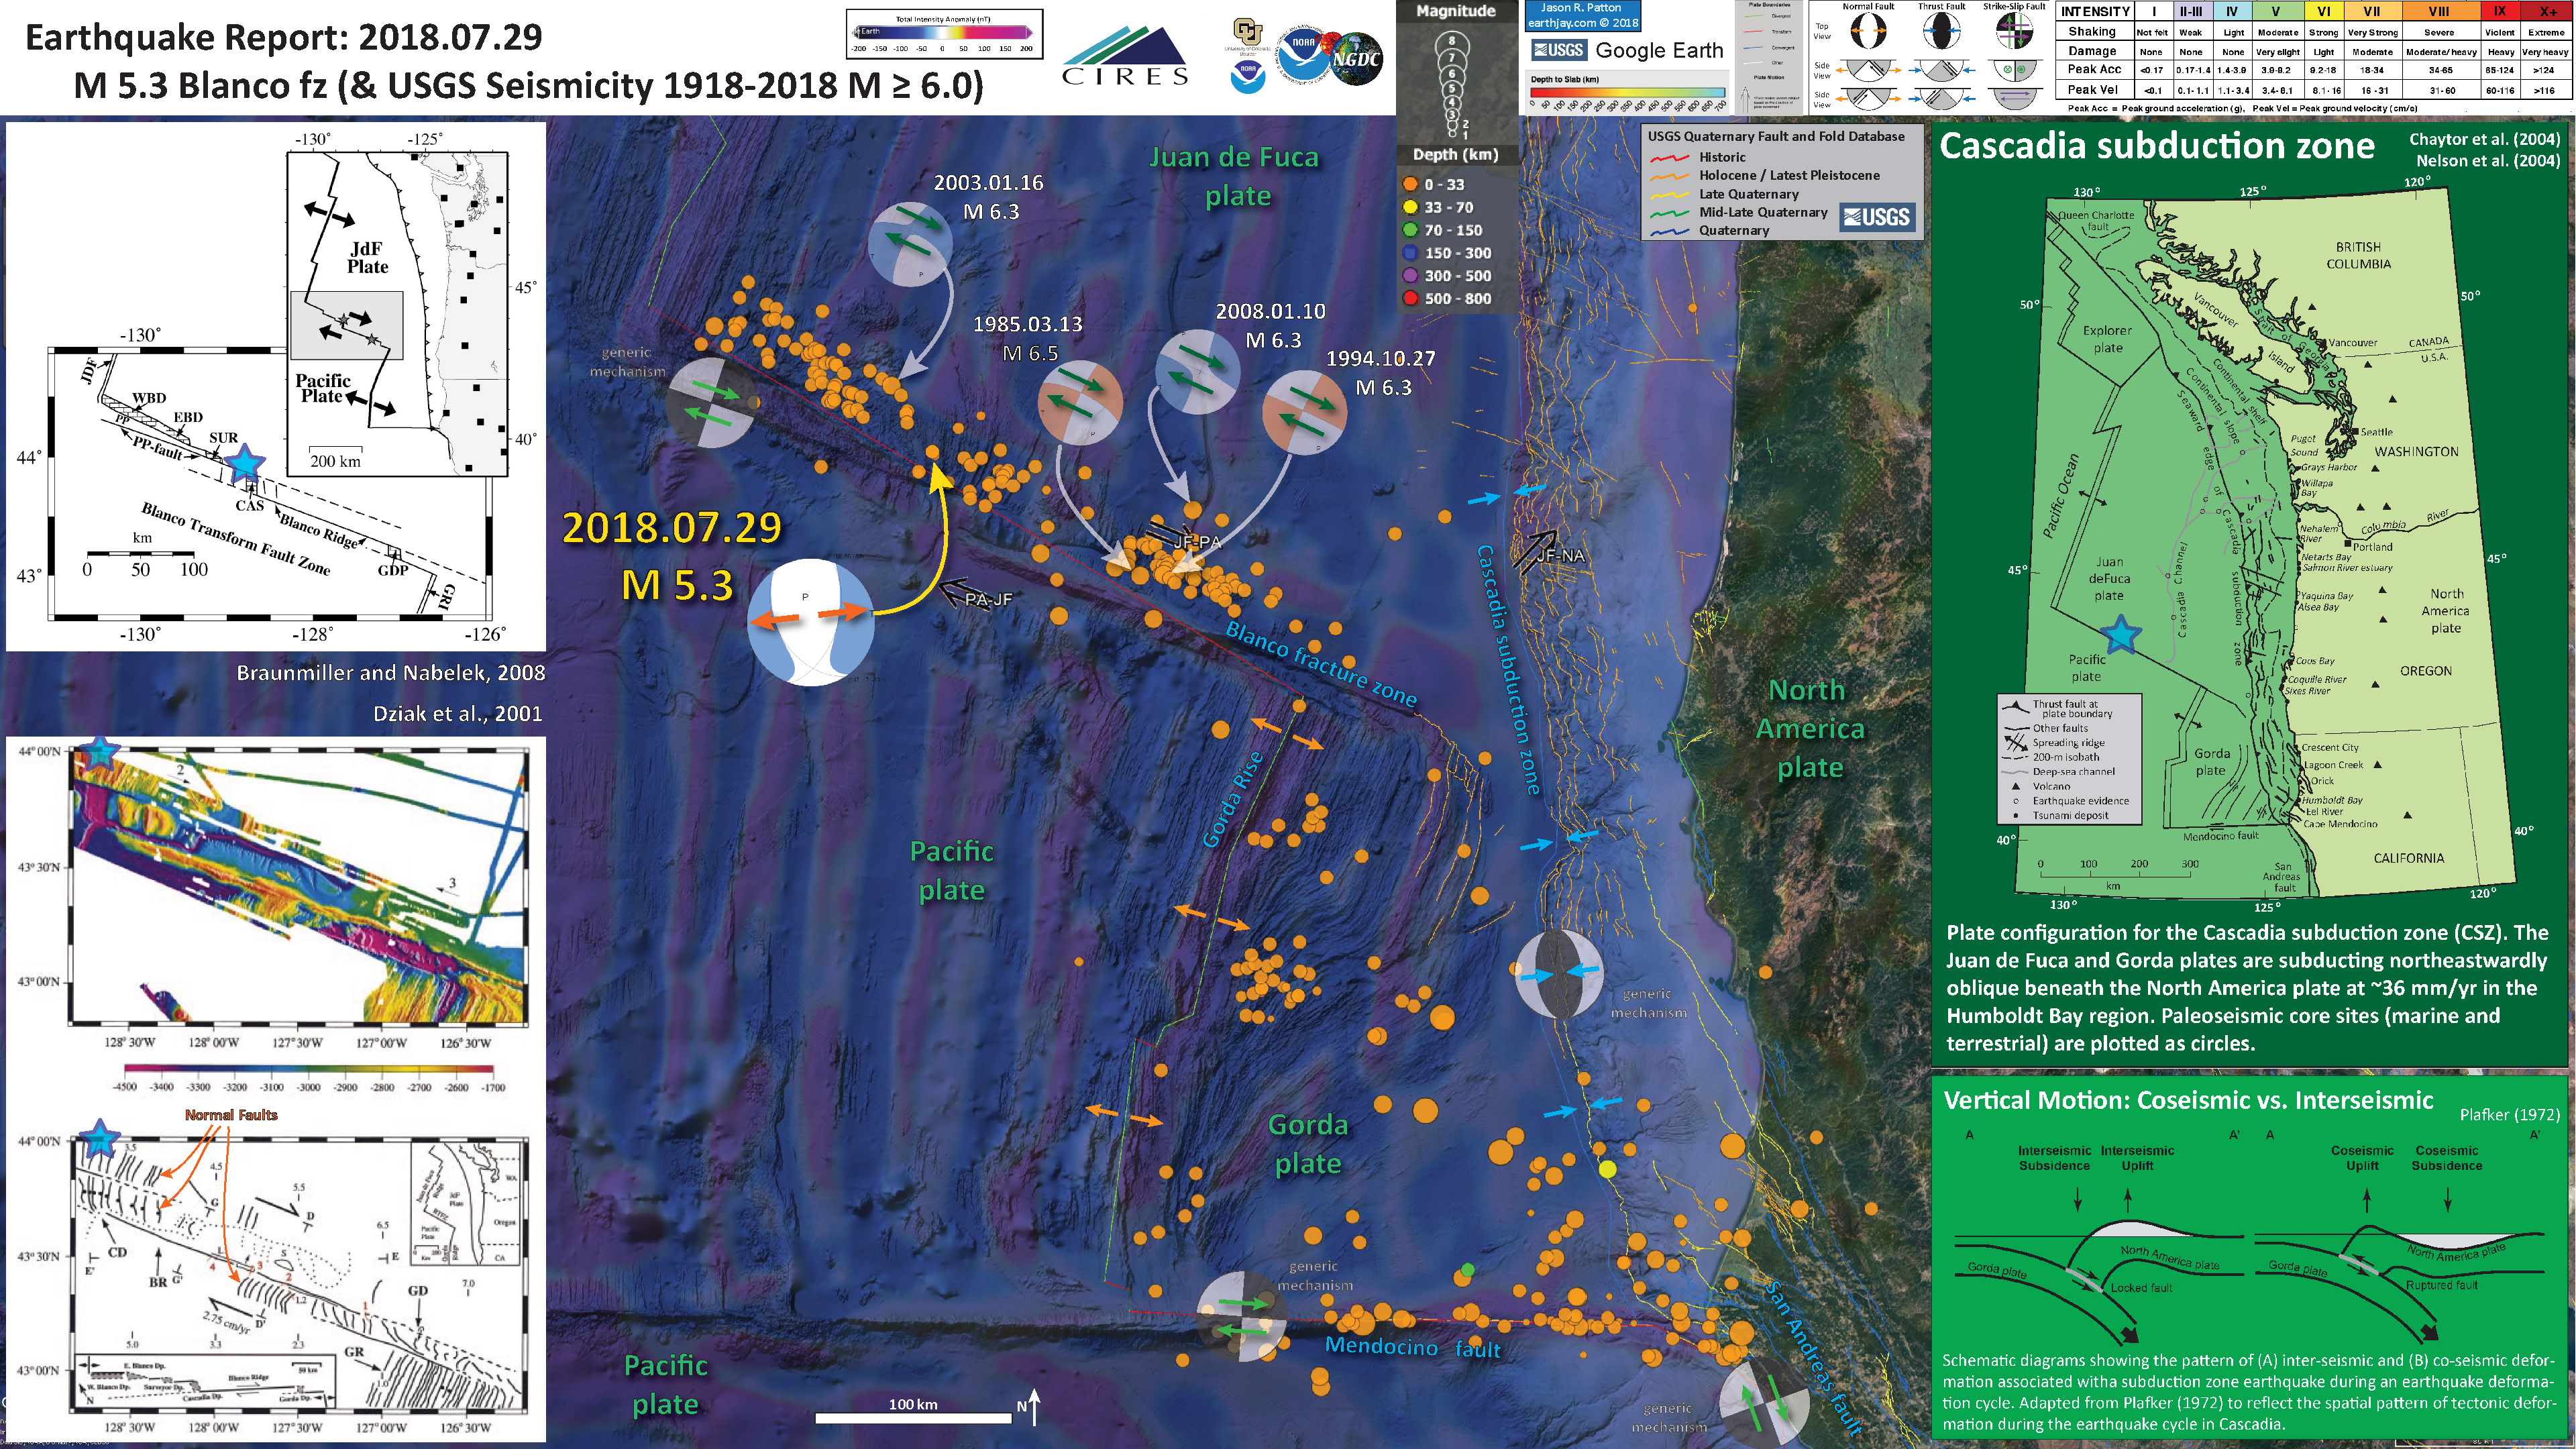 Usgs Earthquake Map San Francisco.Earthquake Report Blanco Fracture Zone Jay Patton Online